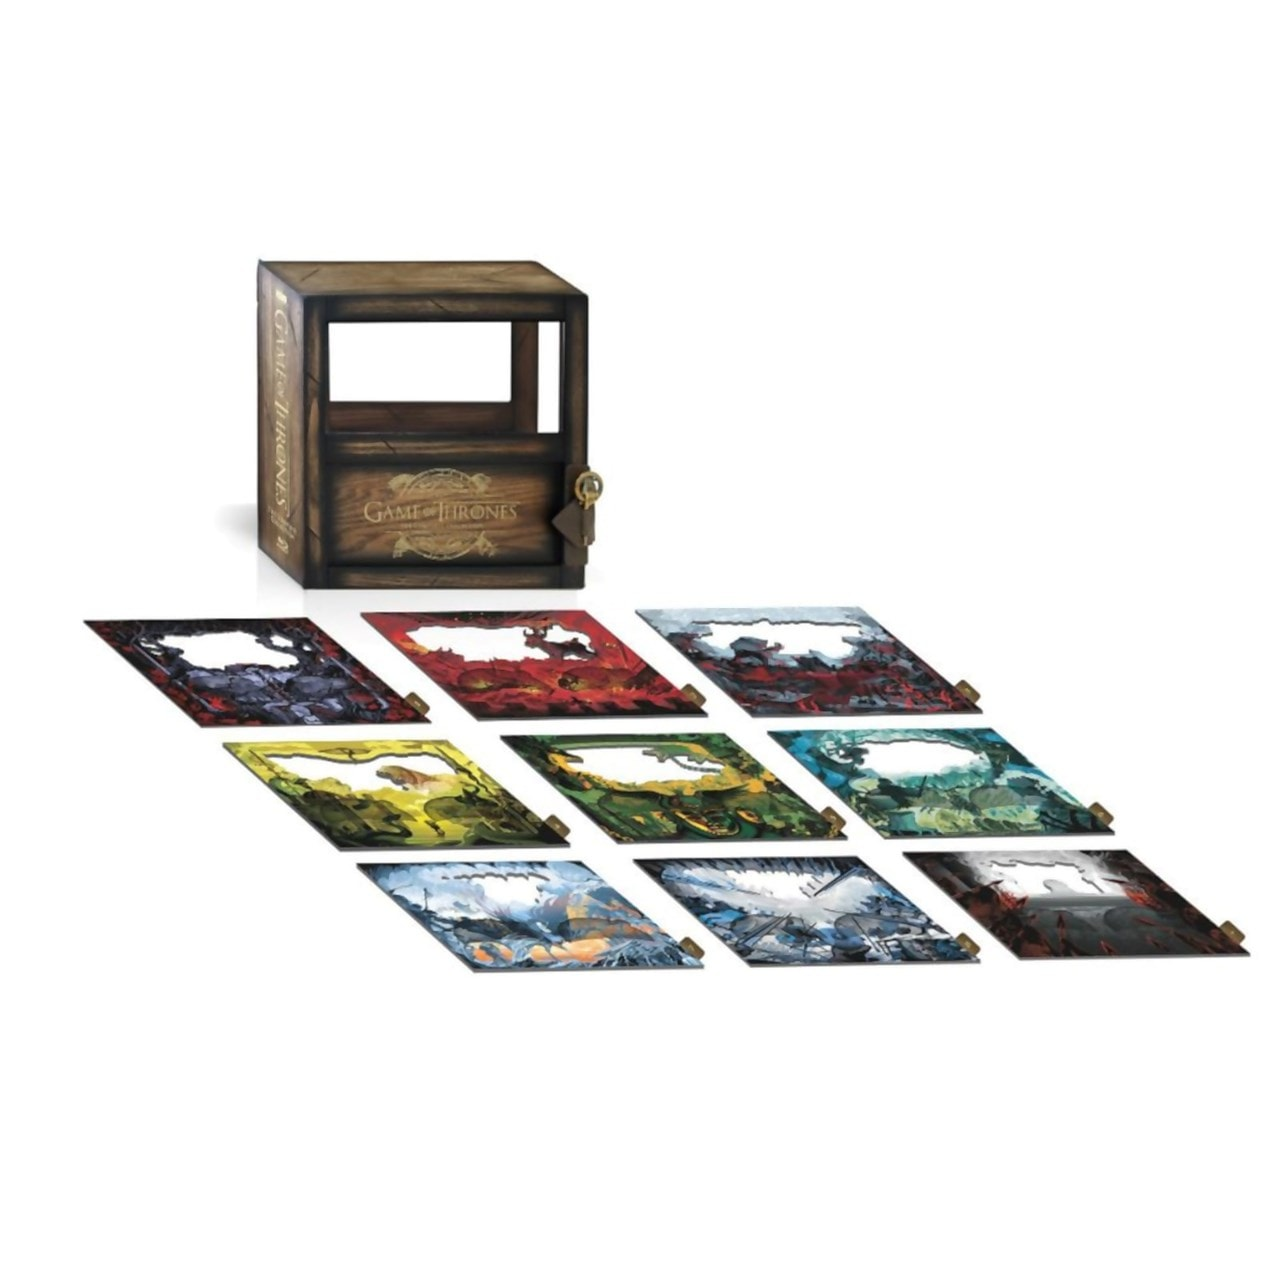 Game of Thrones: The Complete Series Limited Collector's Edition - 5